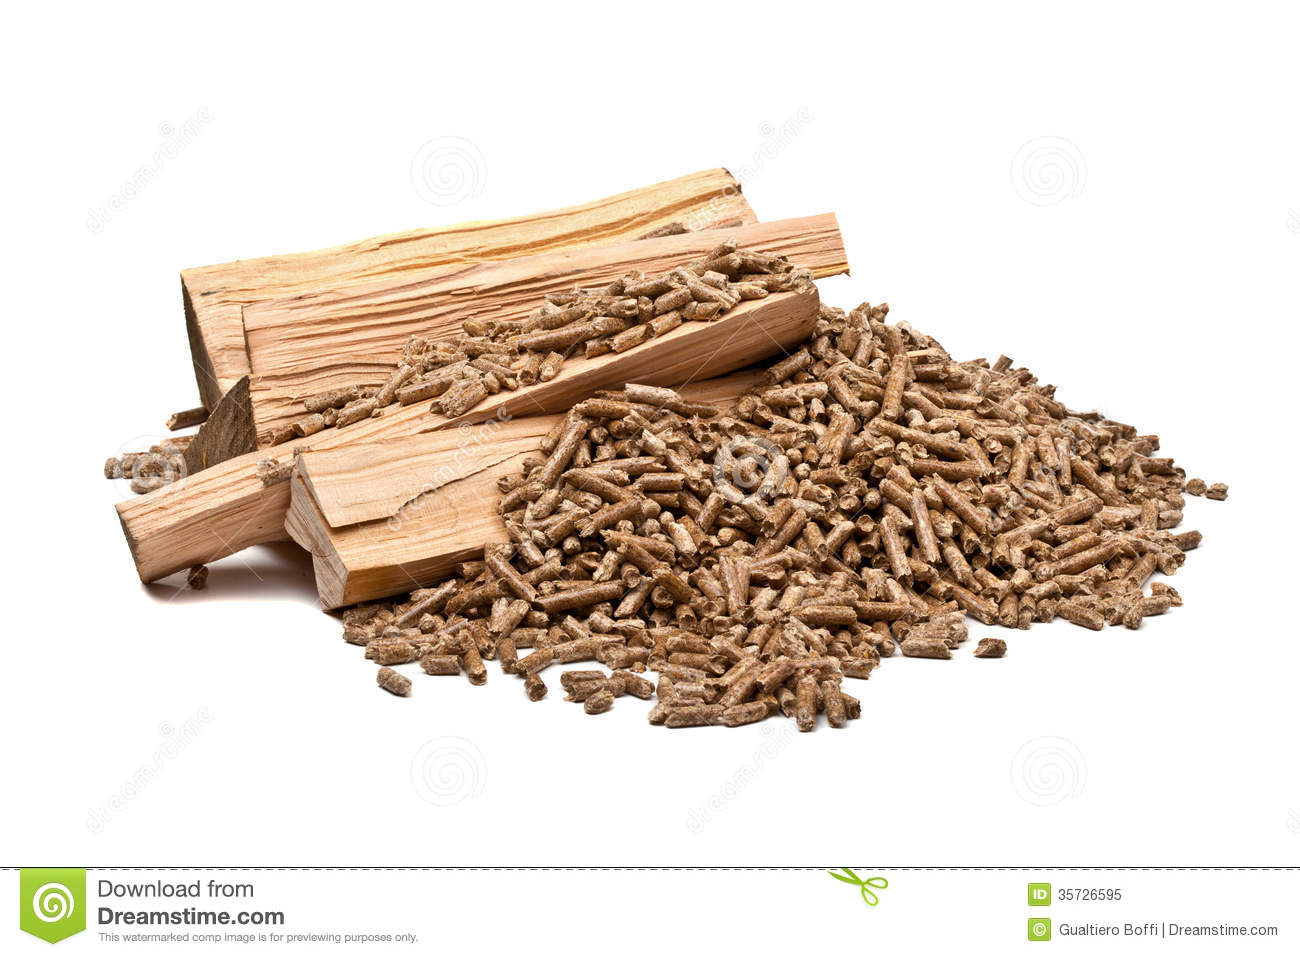 wood pellet royalty free stock photo image 35726595 fire flames clipart black and white fire flames clip art picture